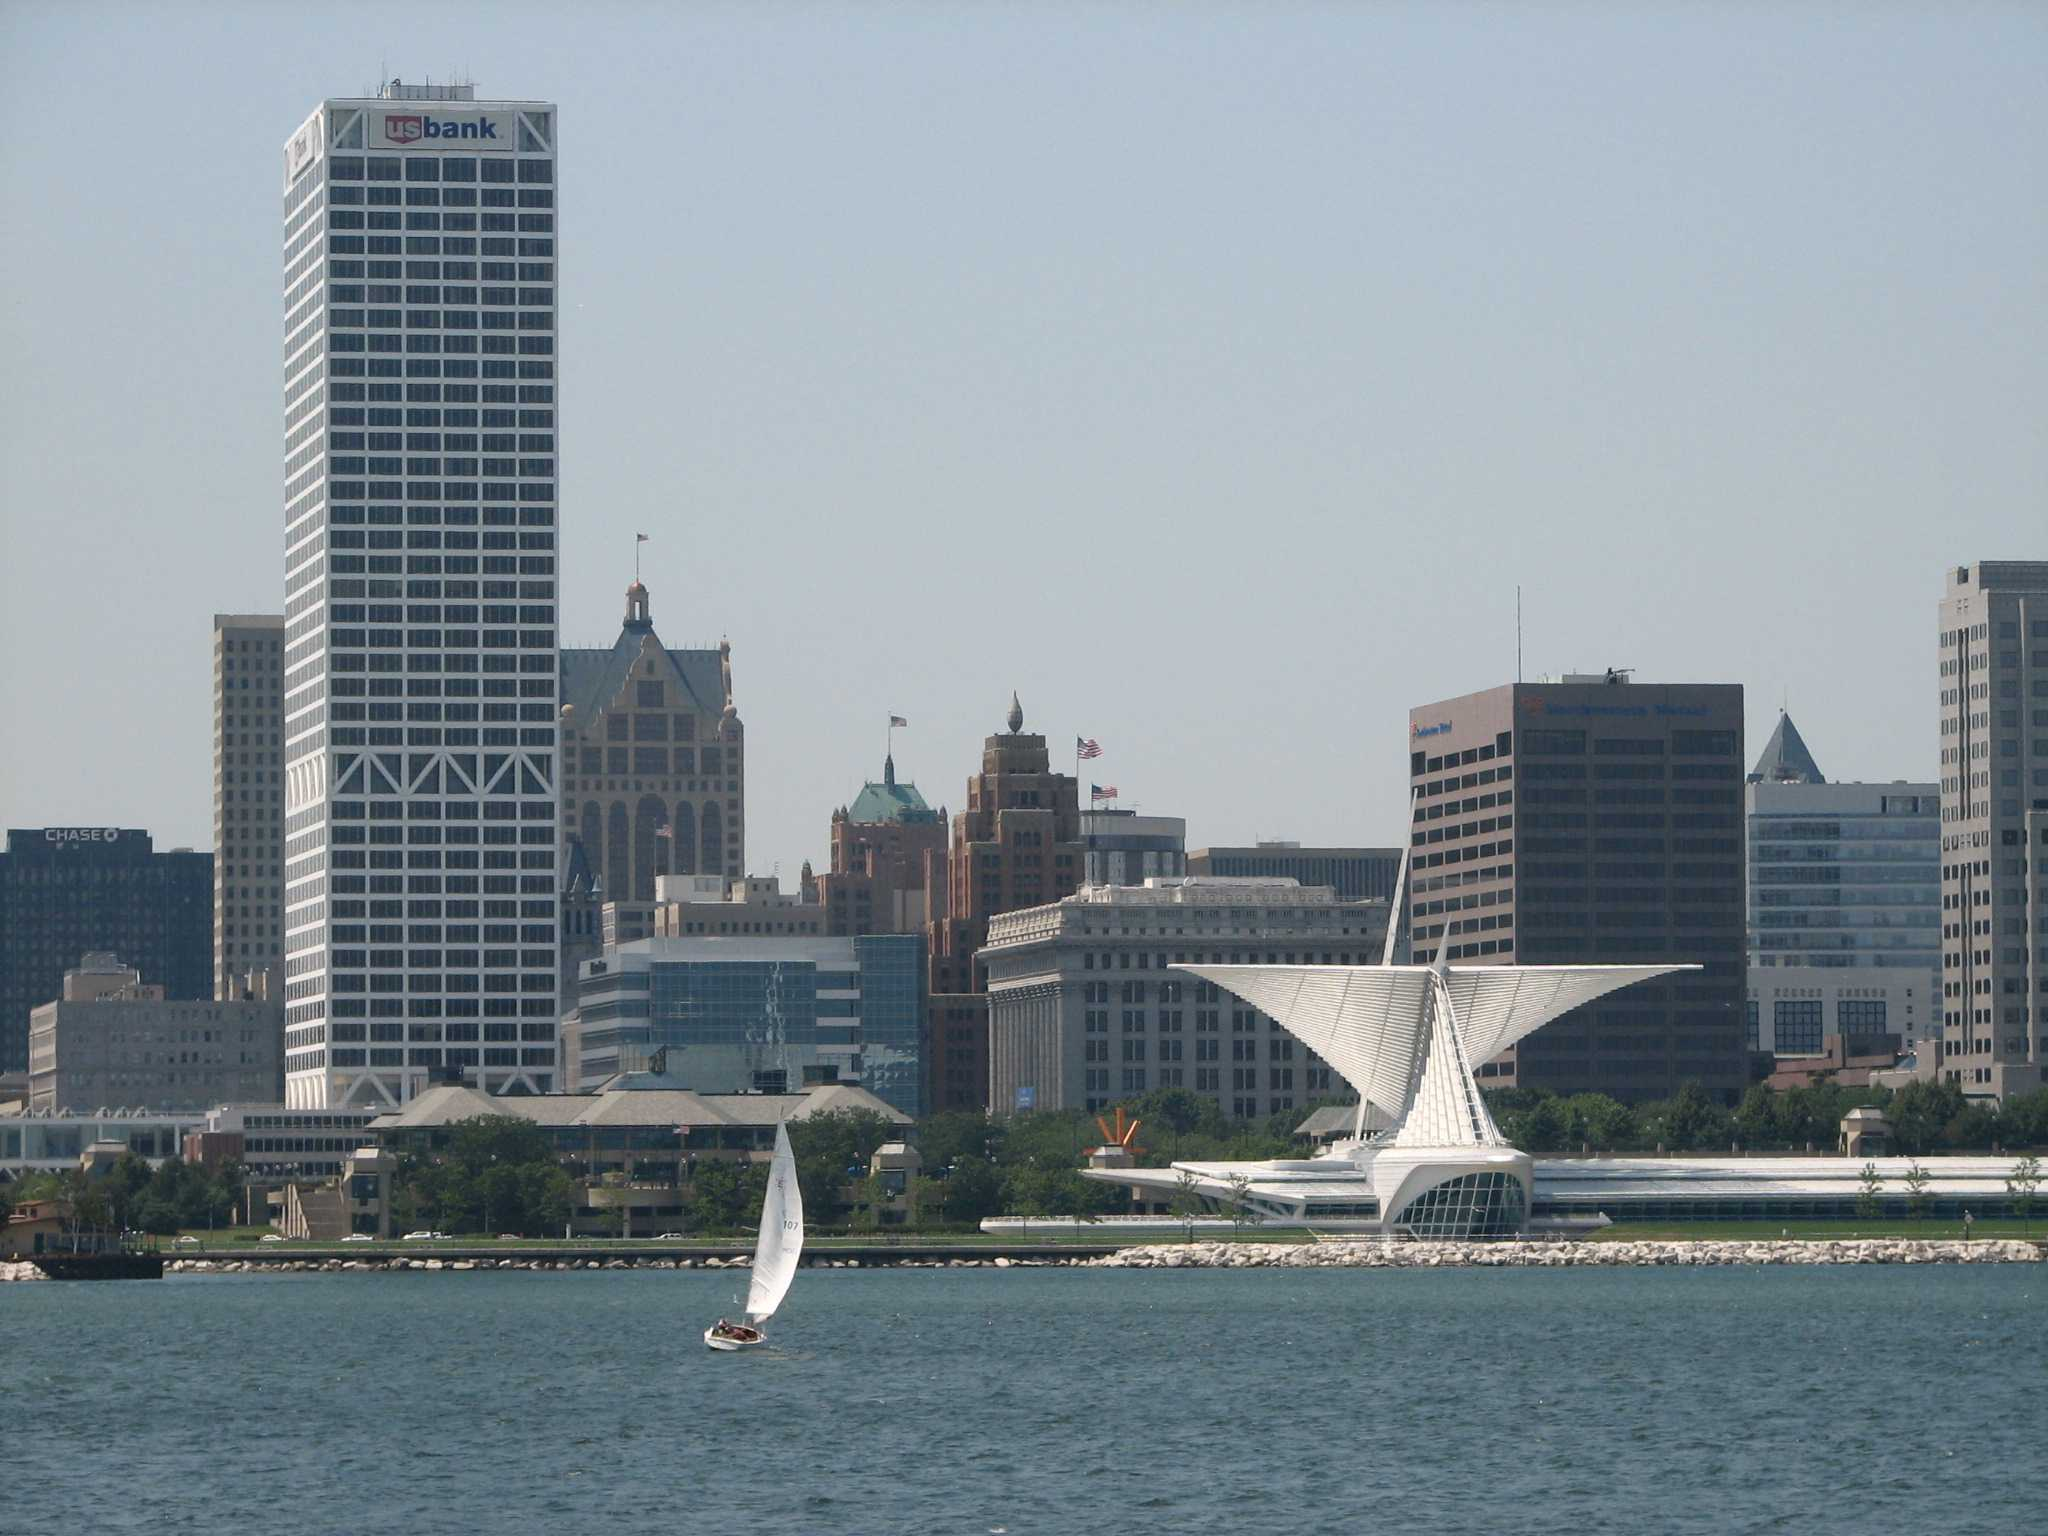 The Milwaukee skyline is getting a new addition: the Northwestern Mutual Building. Used with permission from Creative Commons.